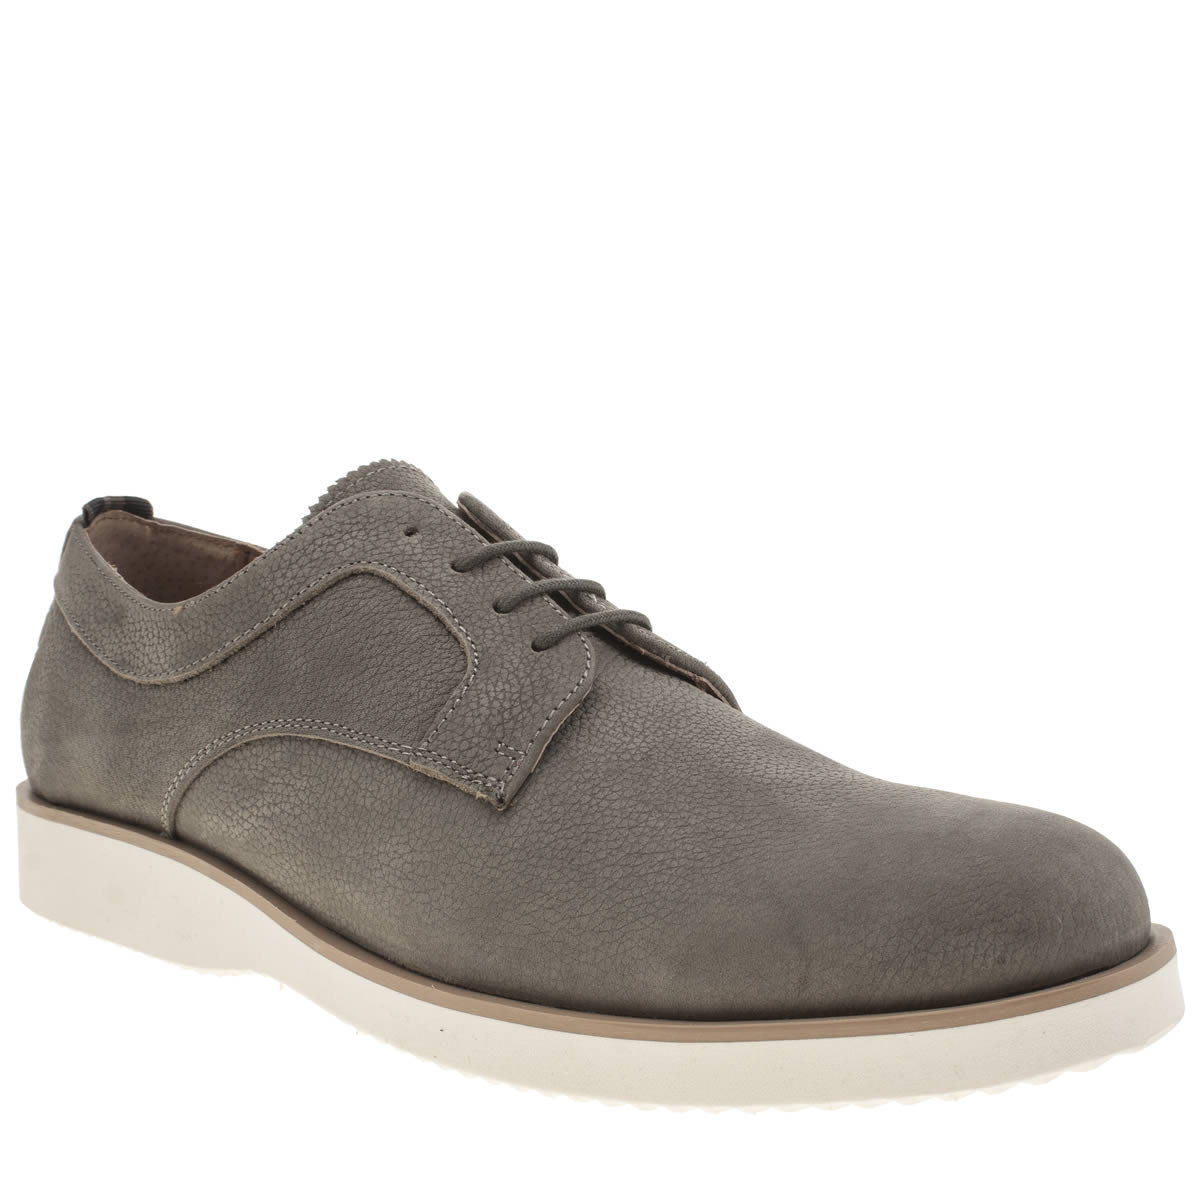 Peter Werth Peter Werth Grey Kinglsey Derby Shoes